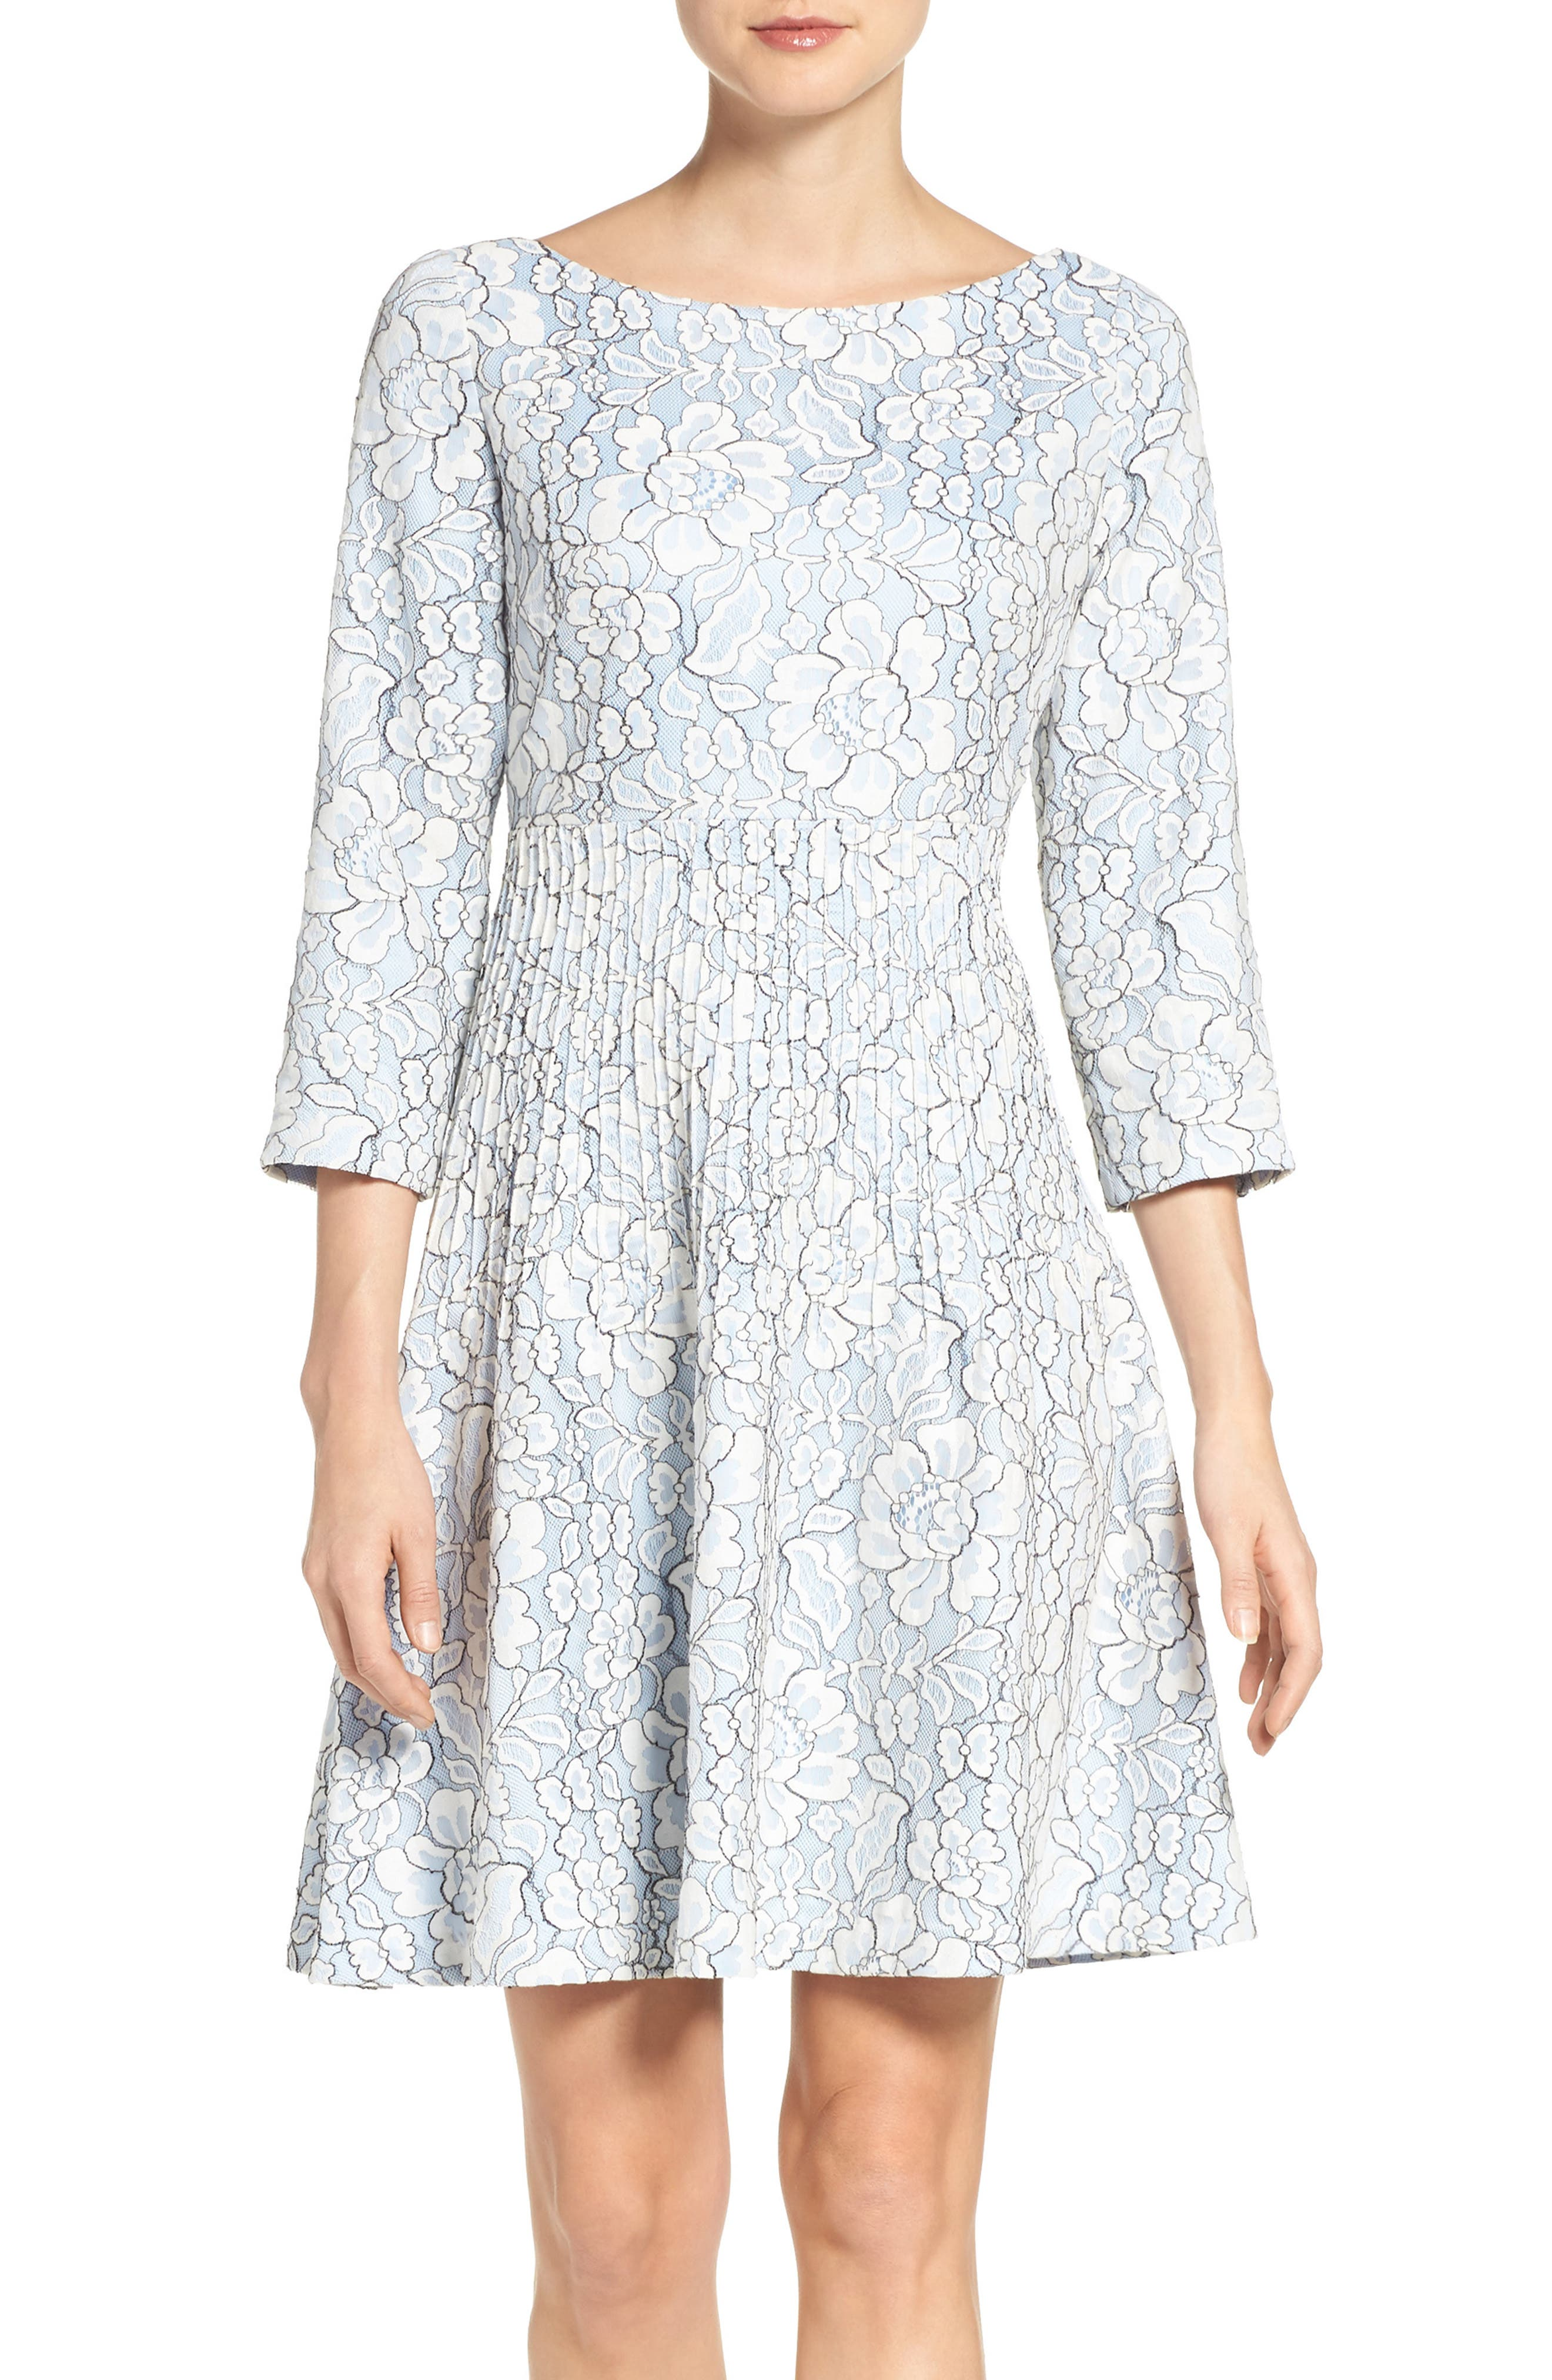 Embroidered Floral Fit & Flare Dress,                             Main thumbnail 1, color,                             Ivory/ Blue